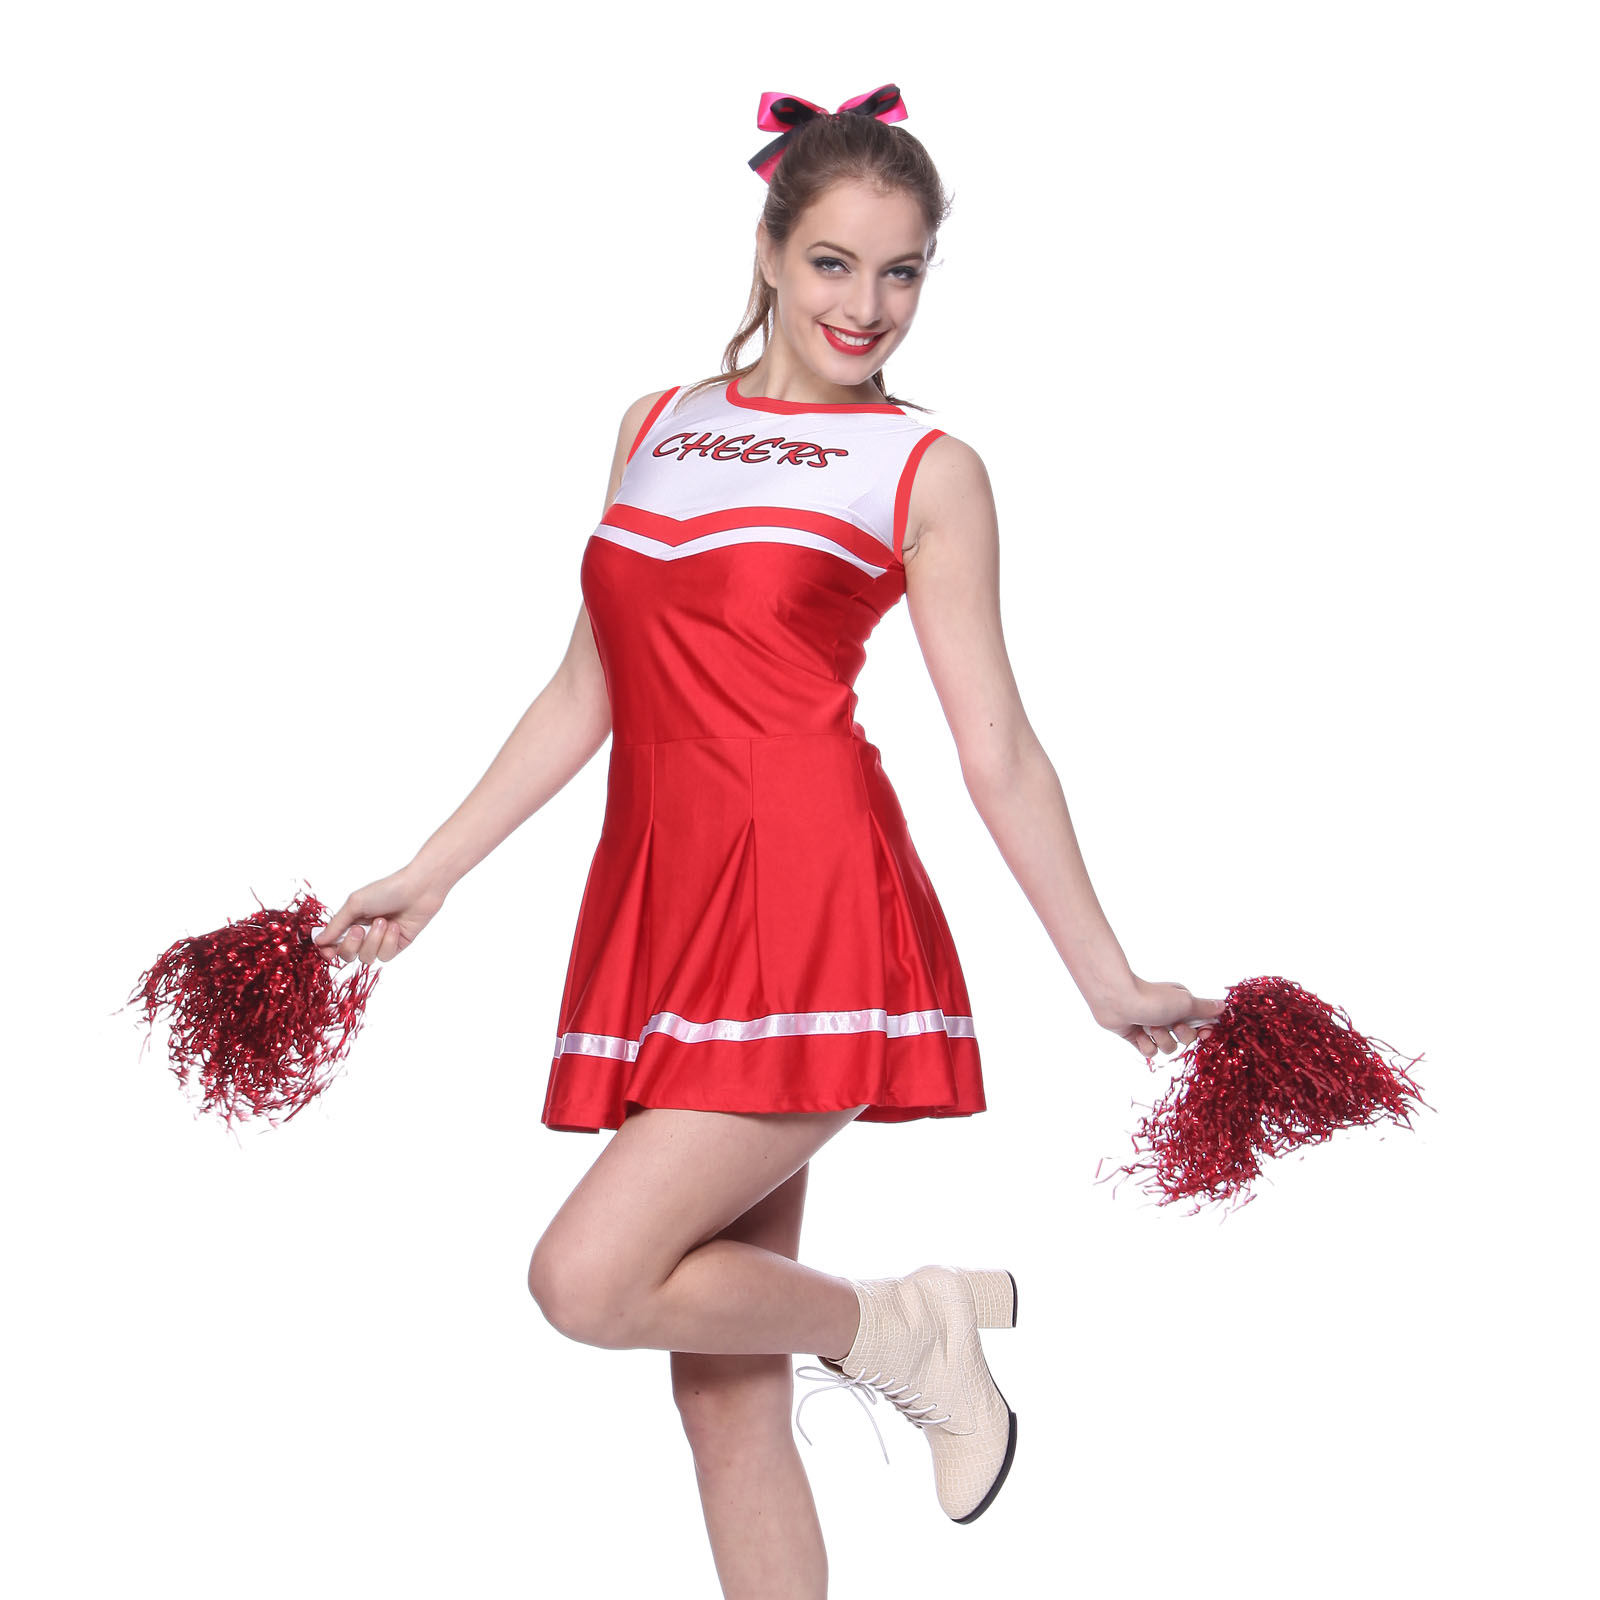 Cheerleader Fancy Dress Outfit High School Uniform Musical Costume + Pompoms | eBay